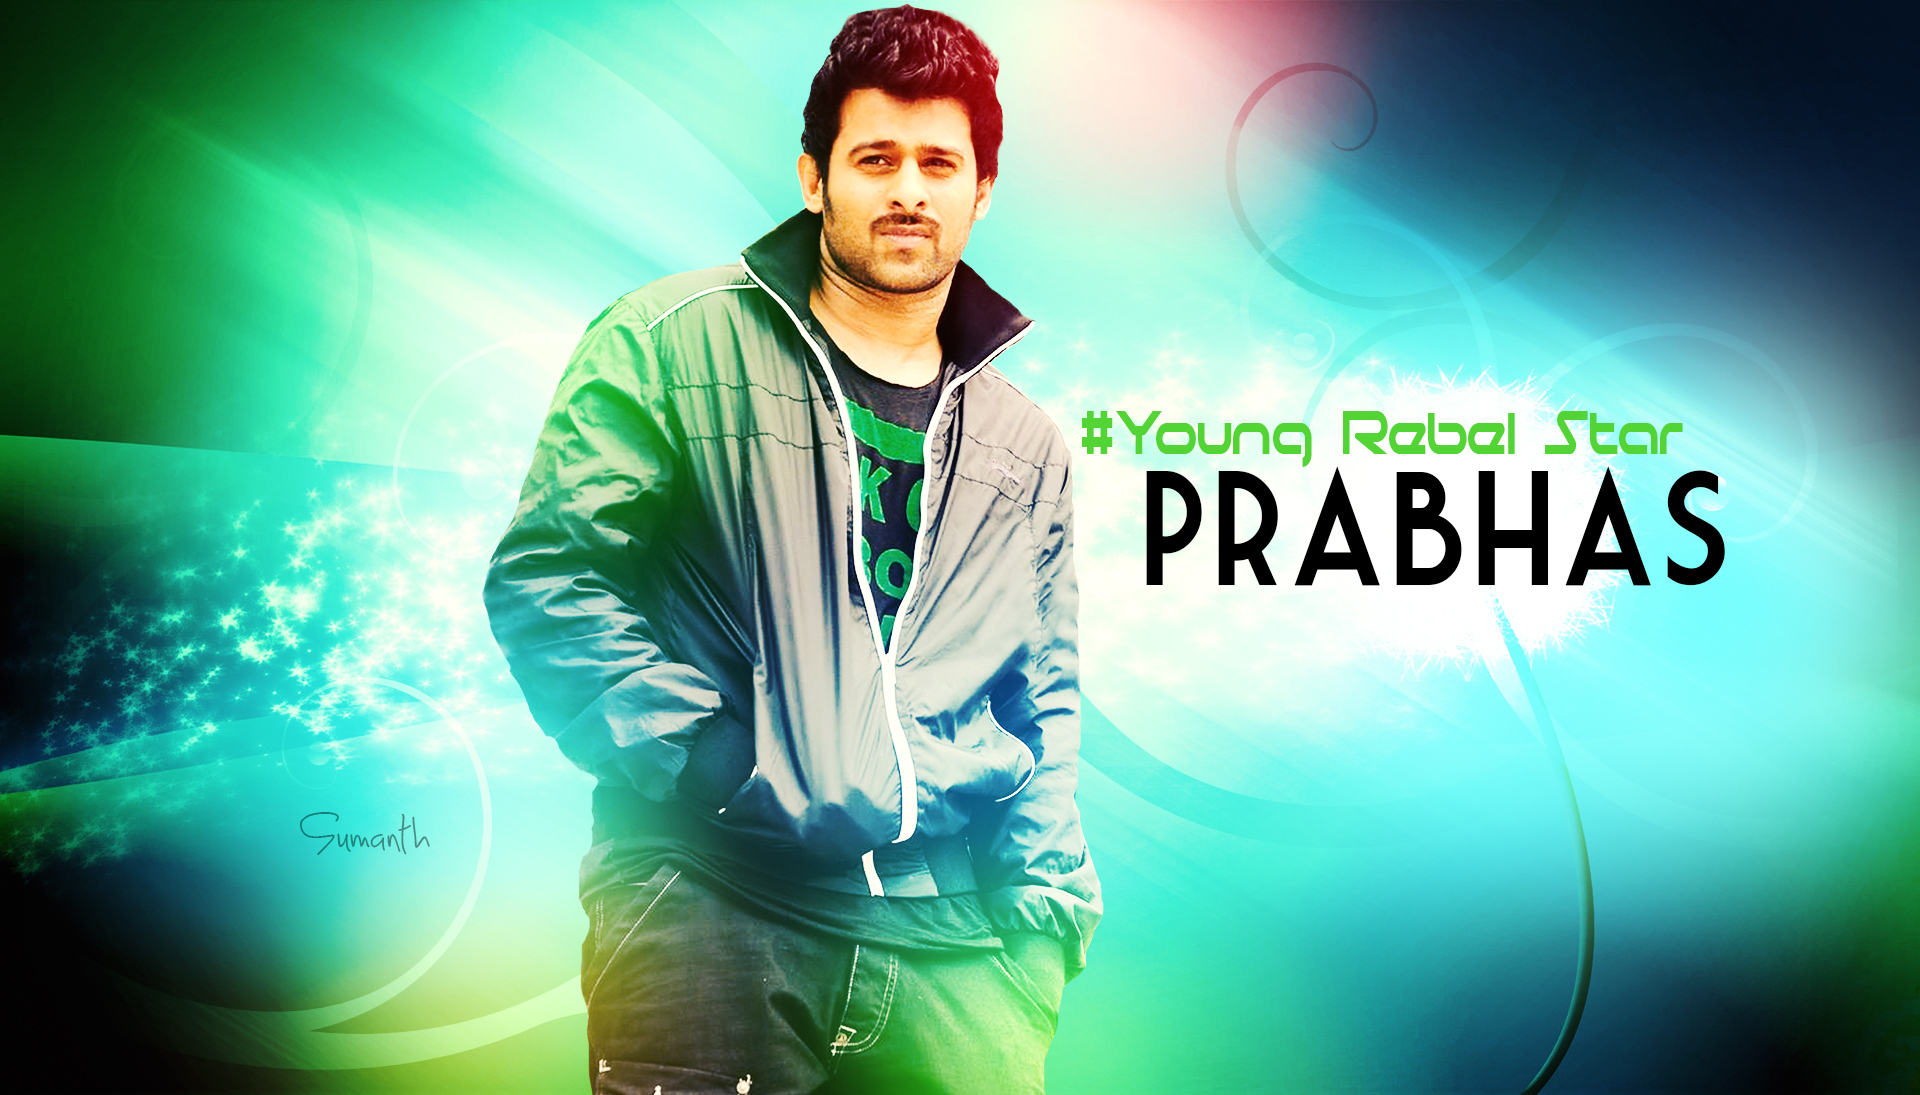 Prabas Wallpaper: Prabhas Wallpapers High Resolution And Quality Download